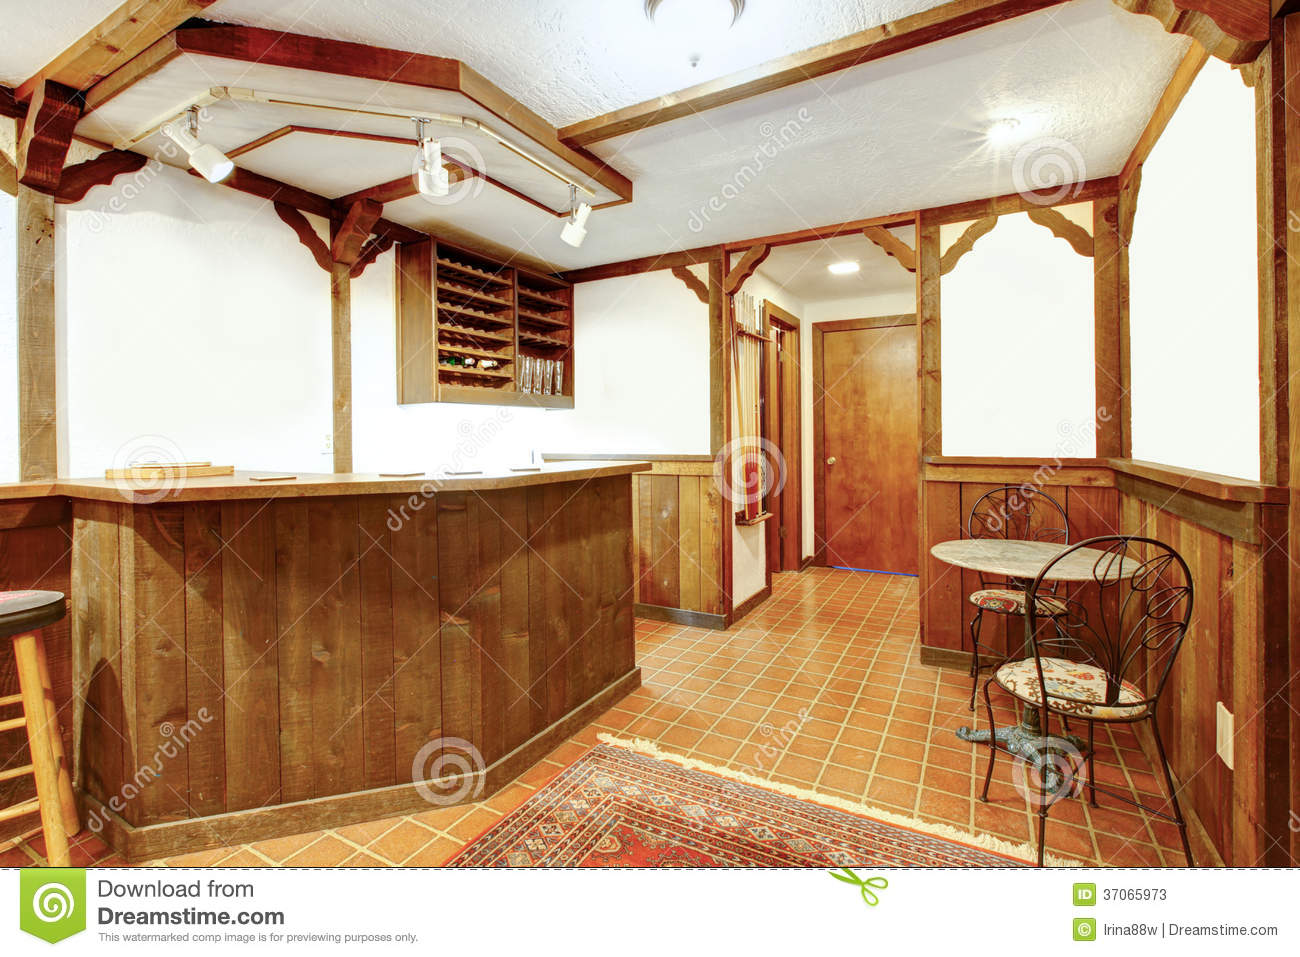 Rustic wooden bar room stock image Image of room living